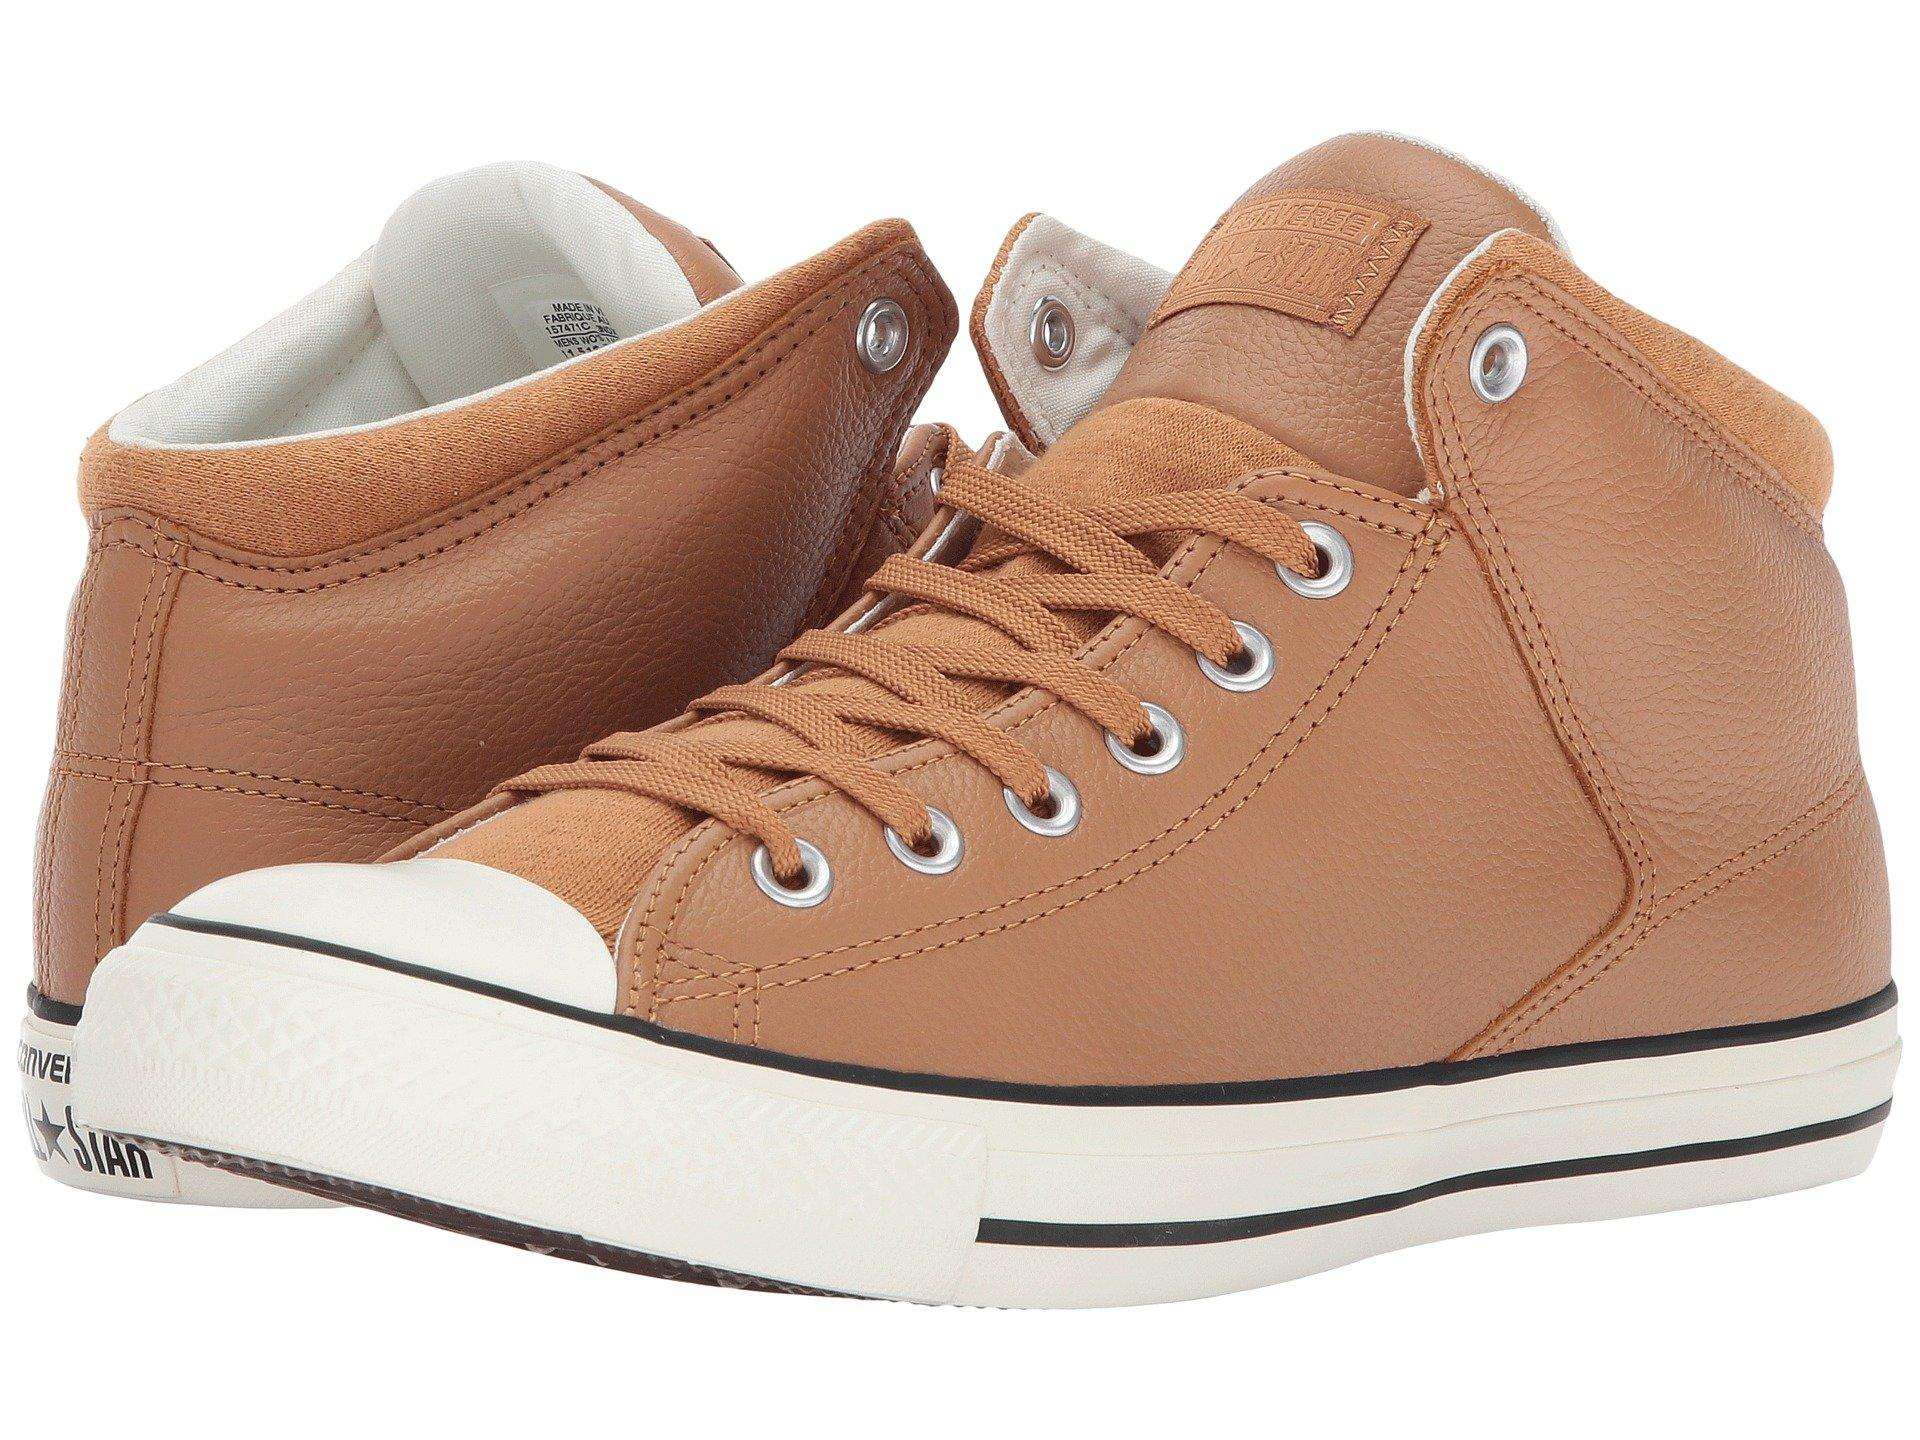 170994879b0bbd Converse Chuck Taylor All Star Street Hi - Tumbled Leather In Terra ...